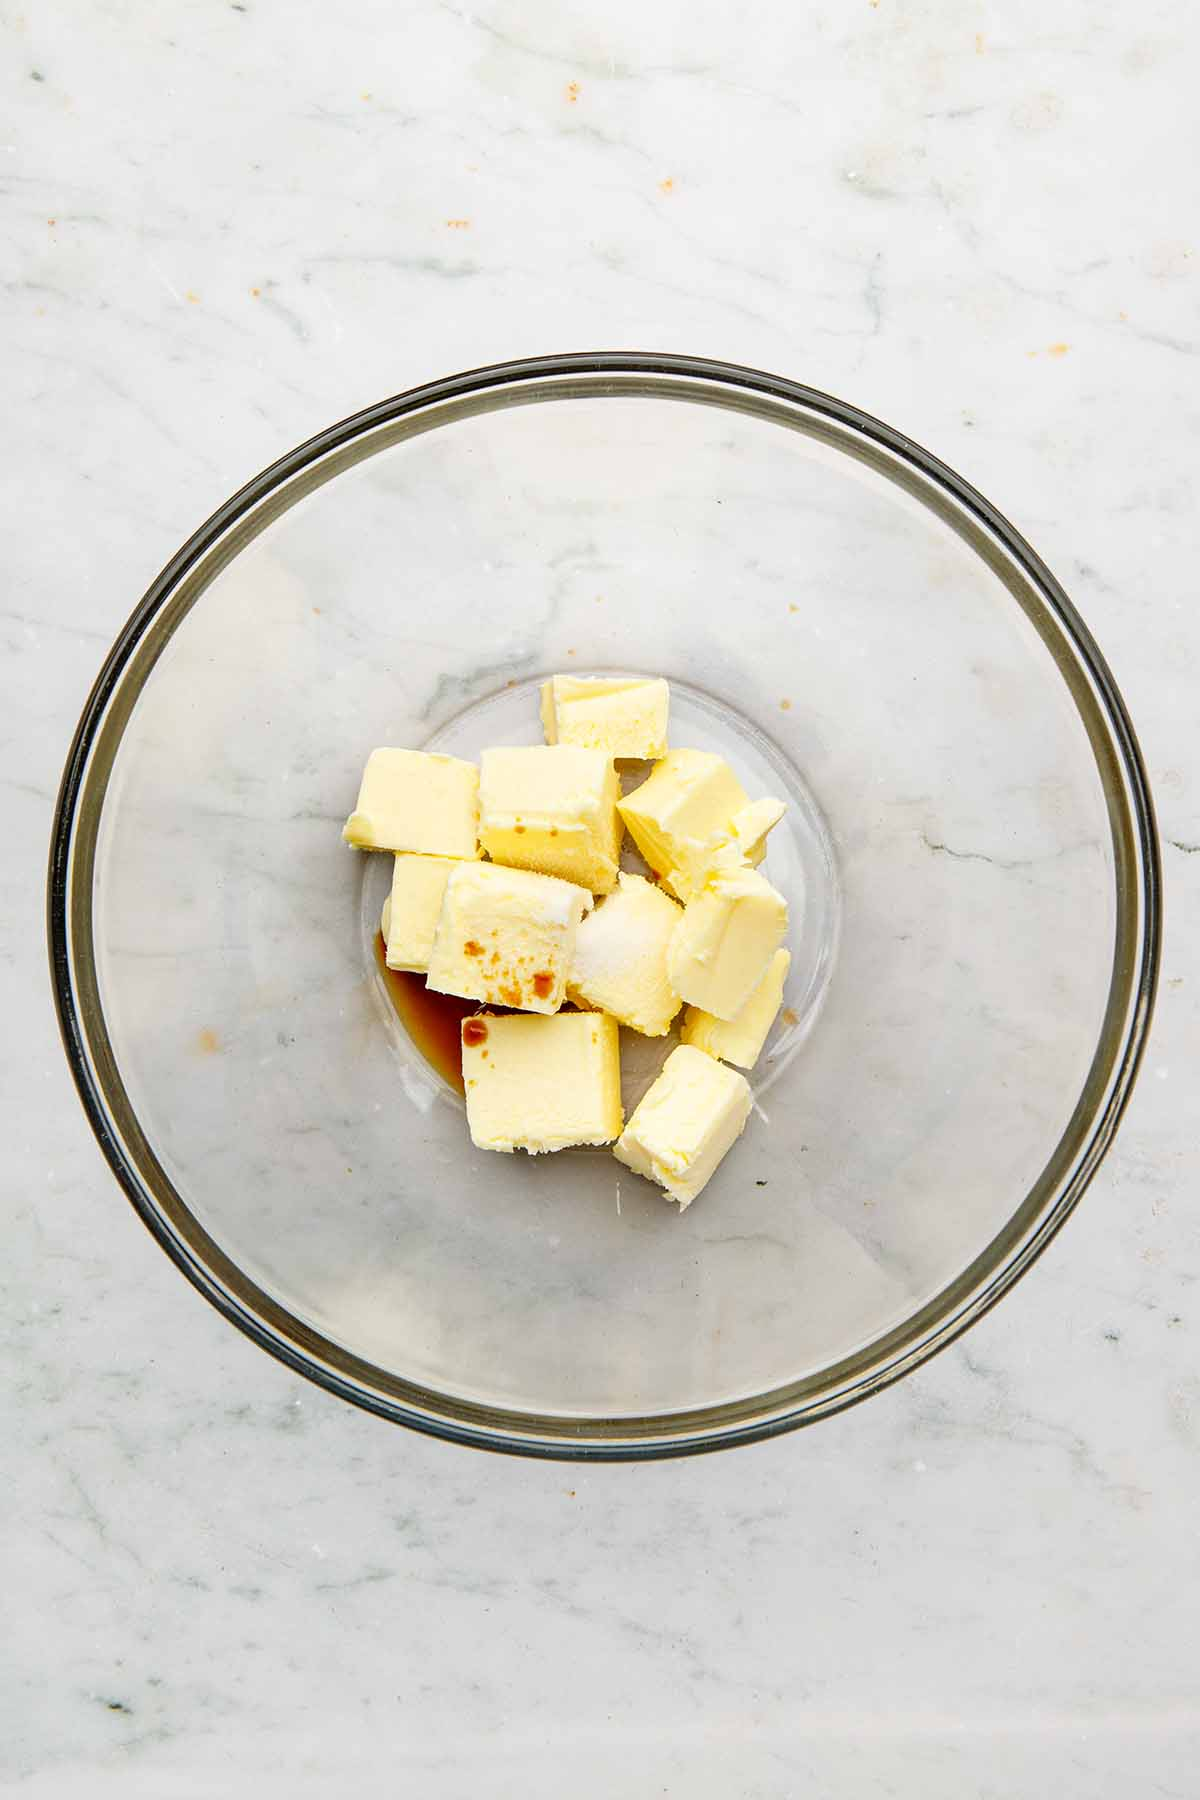 Chunks of butter, vanilla, and salt in a large glass bowl.